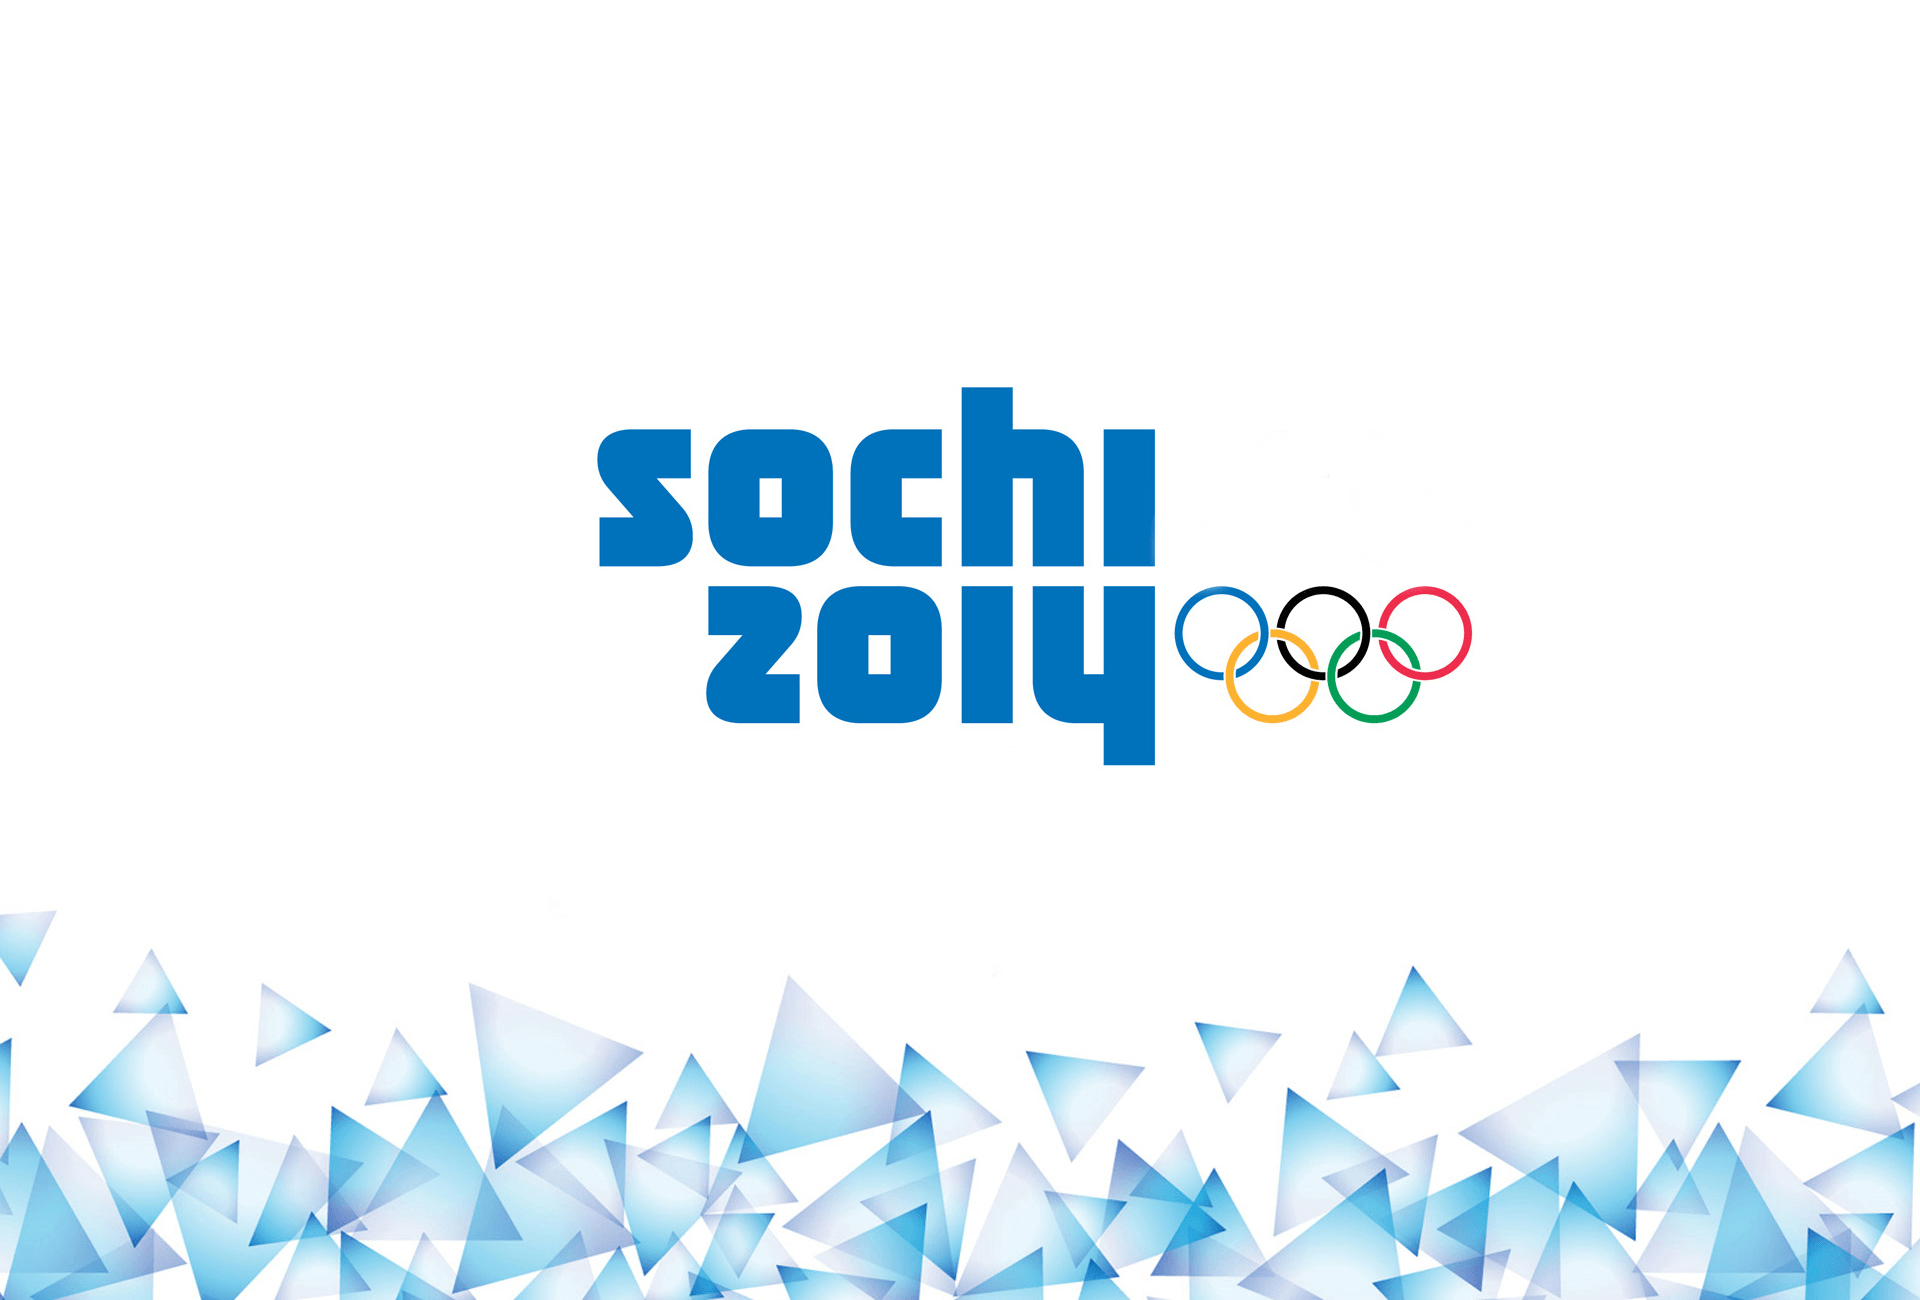 Countdown To The Sochi 2014 Winter Olympics Opening Ceremony